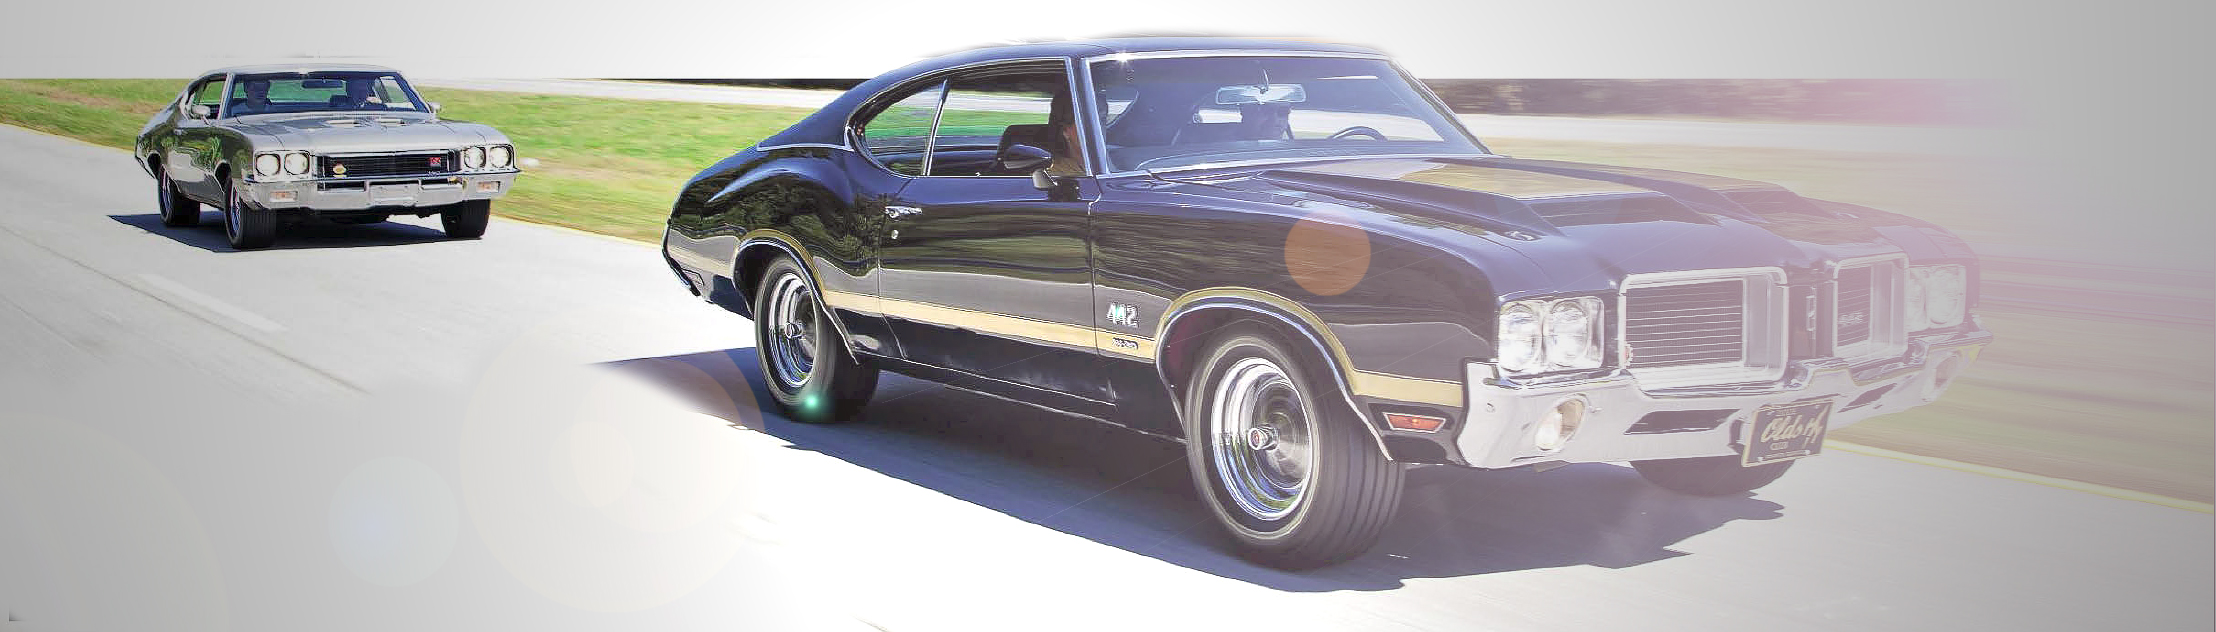 Giant test 1971 Oldsmobile 442 W-30 vs 1972 Buick GS 455